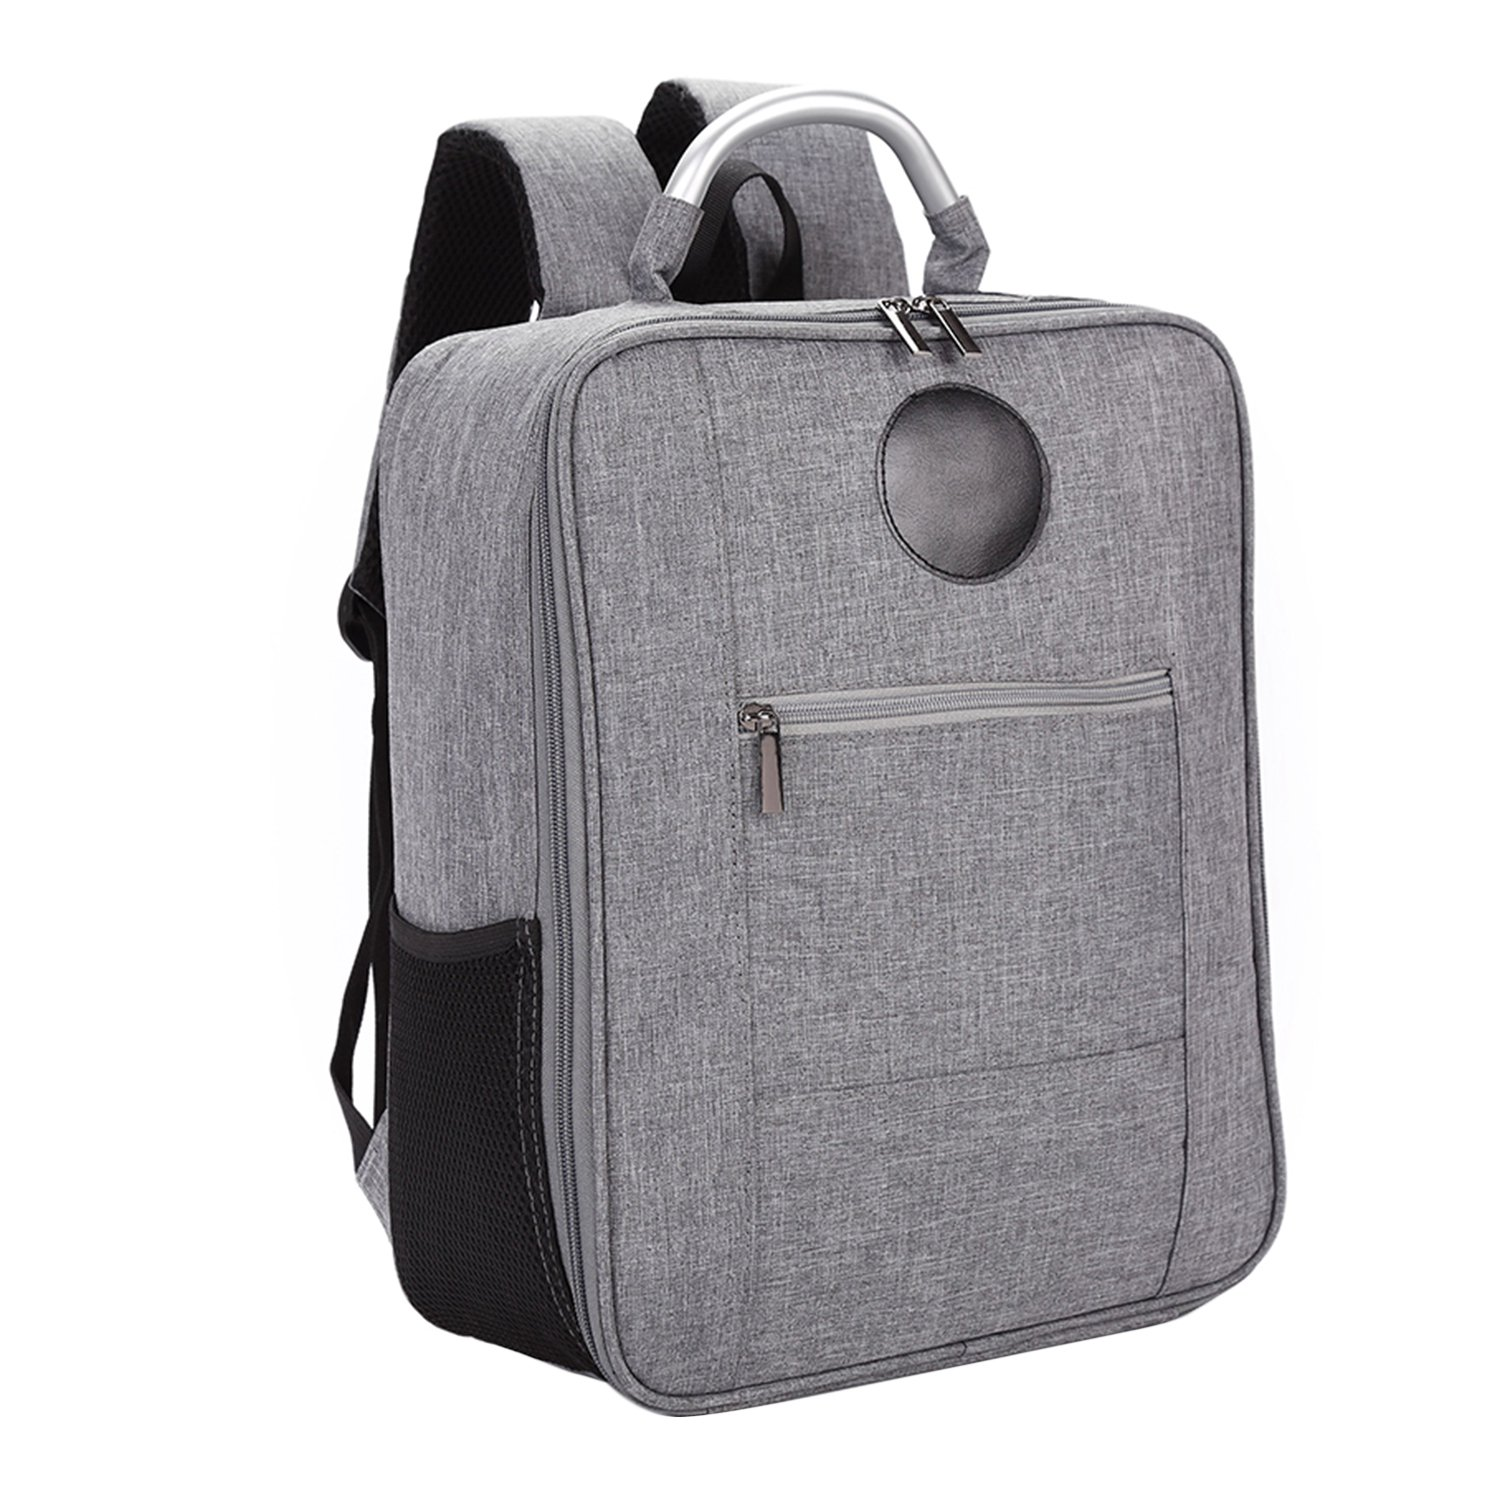 Durable Backpack Handbag Portable Travel Suitcase Shockproof Storage Bag Carrying Box For Xiaomi A3 Camera font